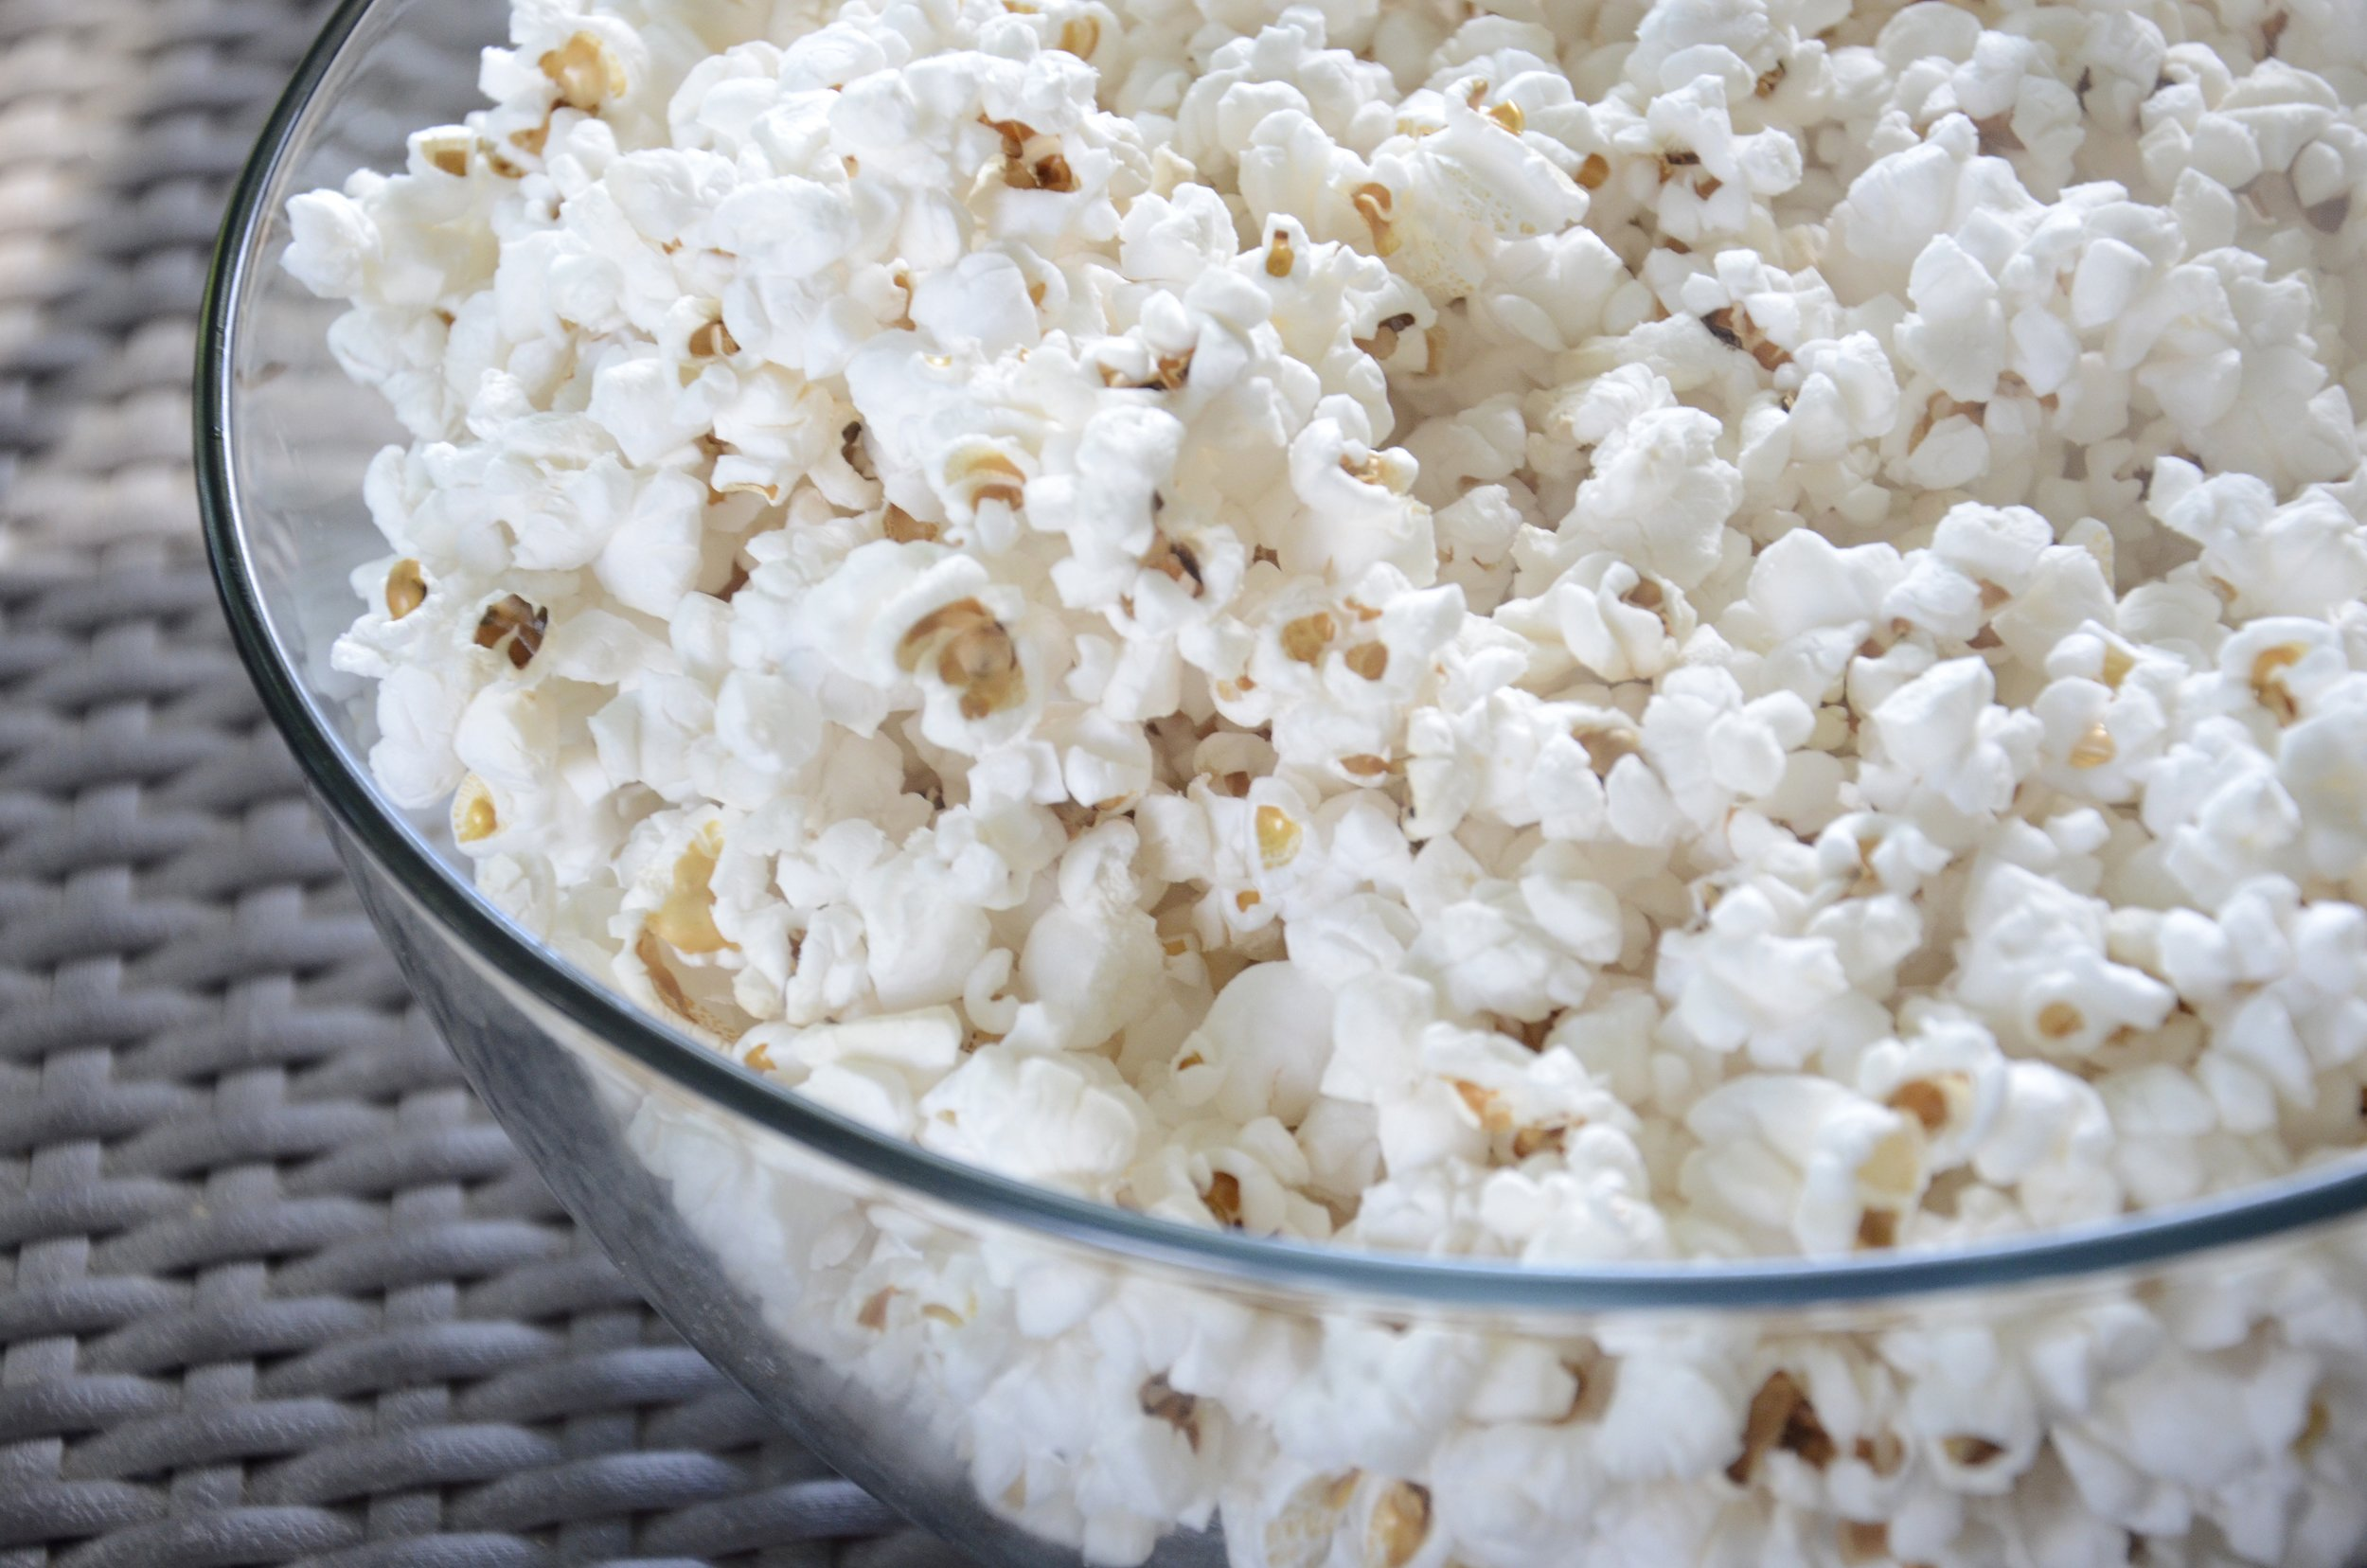 popcorn in a bowl